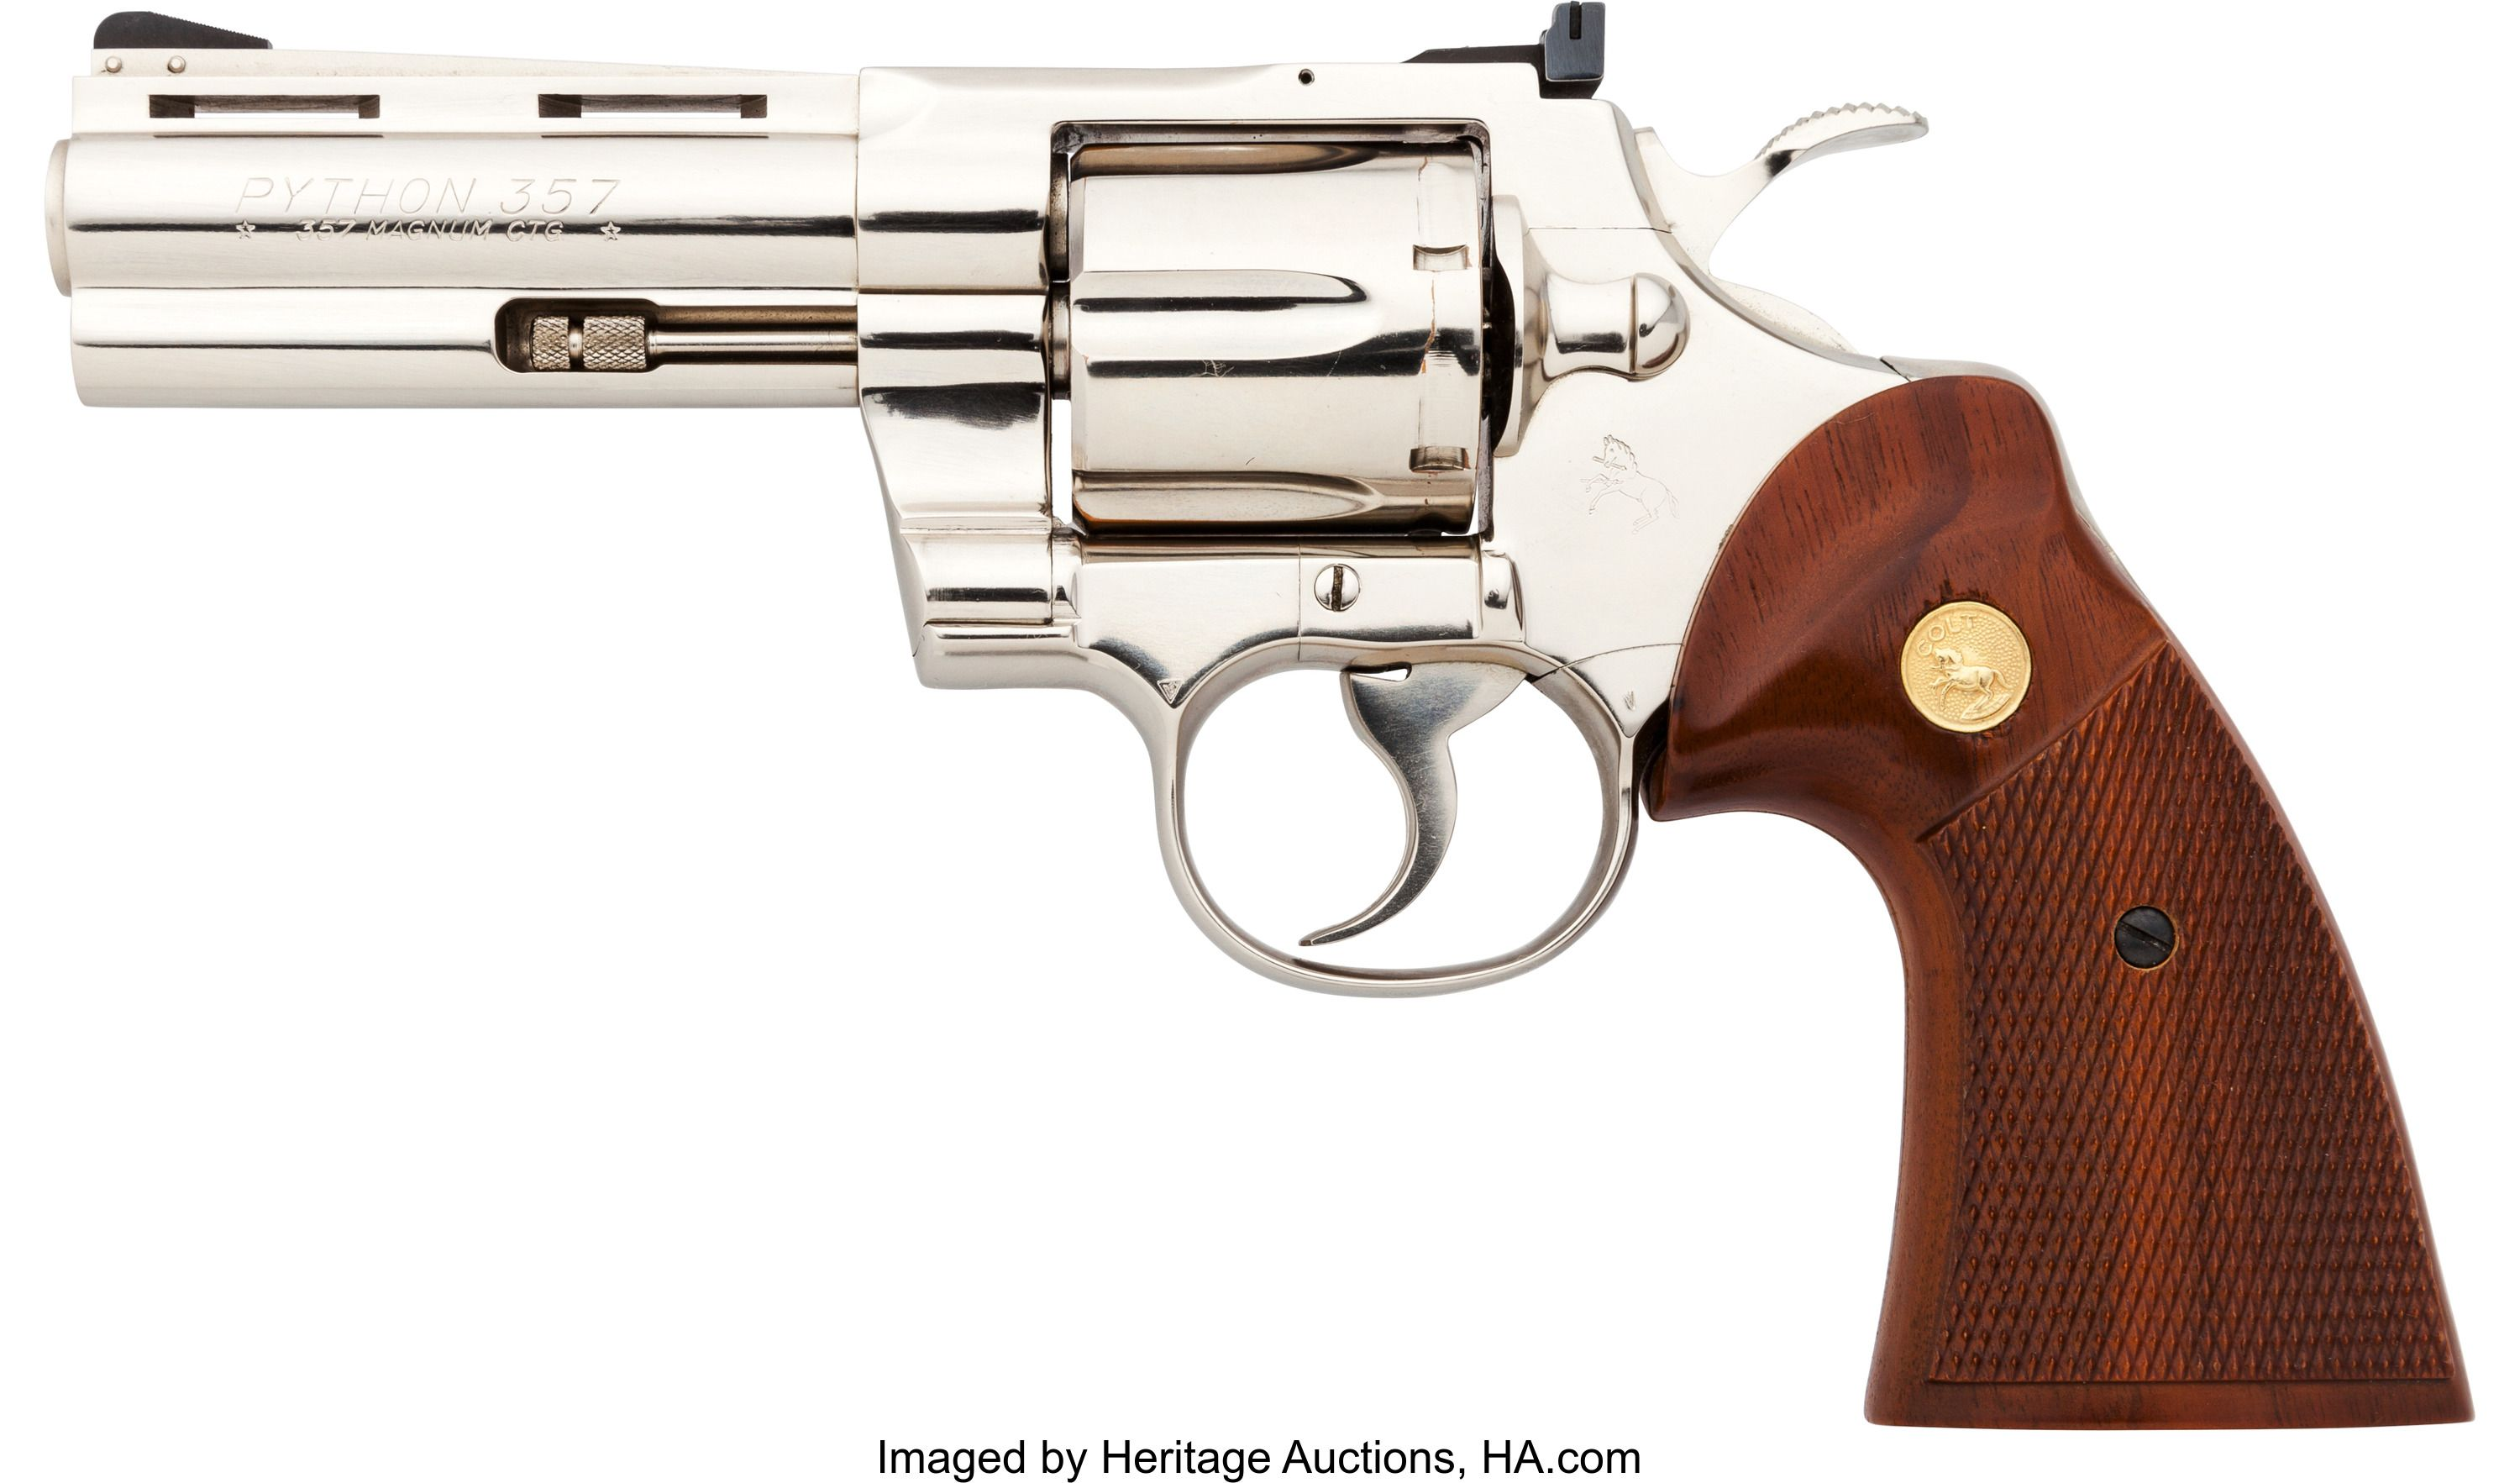 294f0b9981e Colt Python Model Double Action Revolver. Serial no. V36842